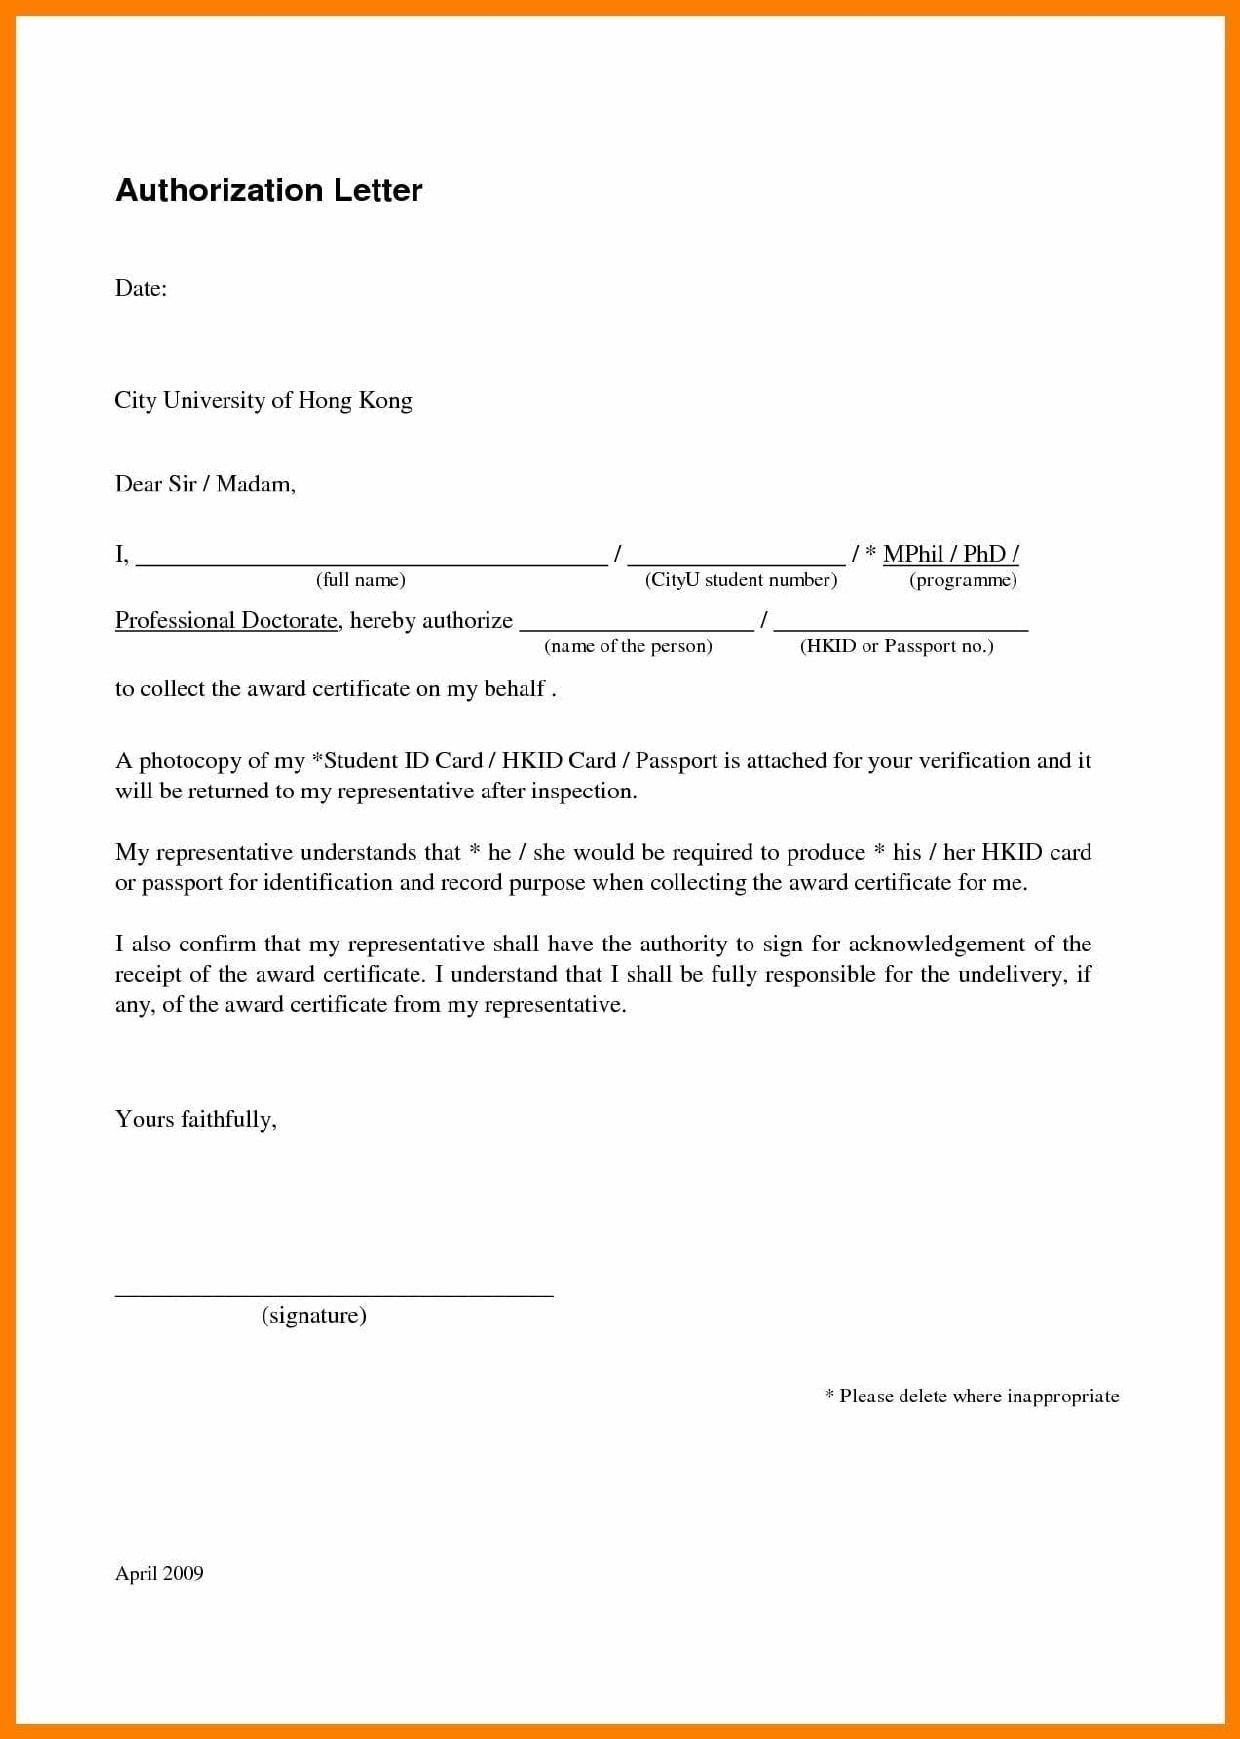 Authorization Letter For Passport Collection from templatearchive.com